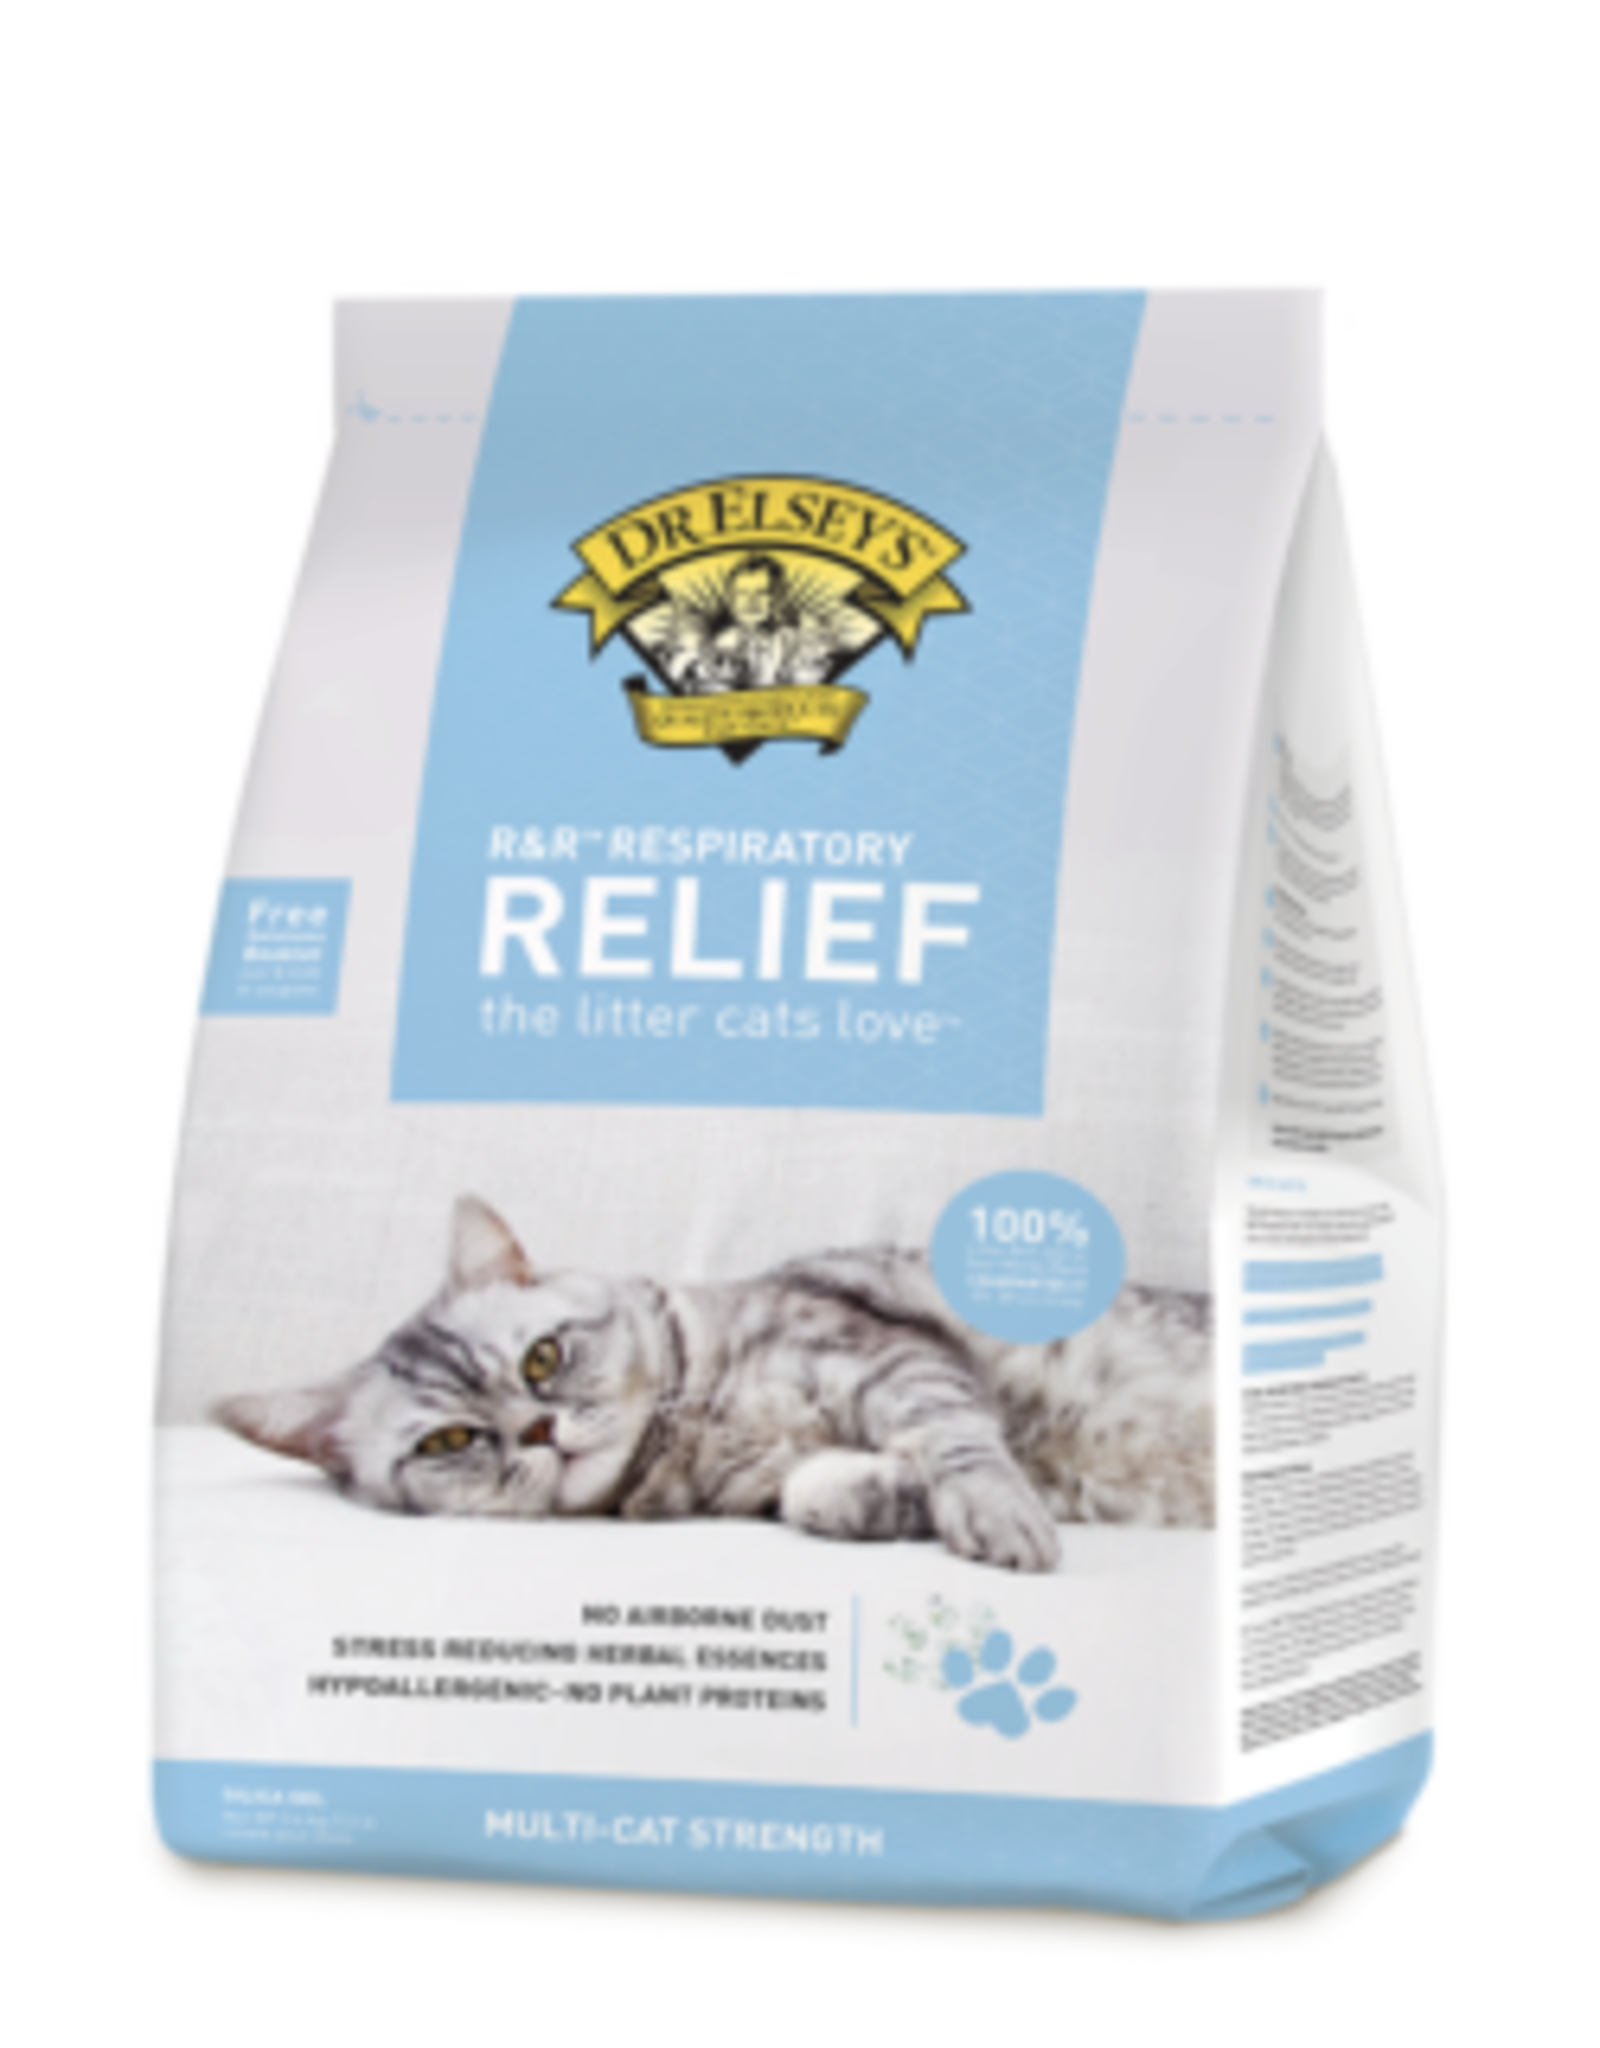 DR ELSEY'S DR ELSEY'S R&R RESPIRATORY RELIEF SILICA CAT LITTER 7.5#